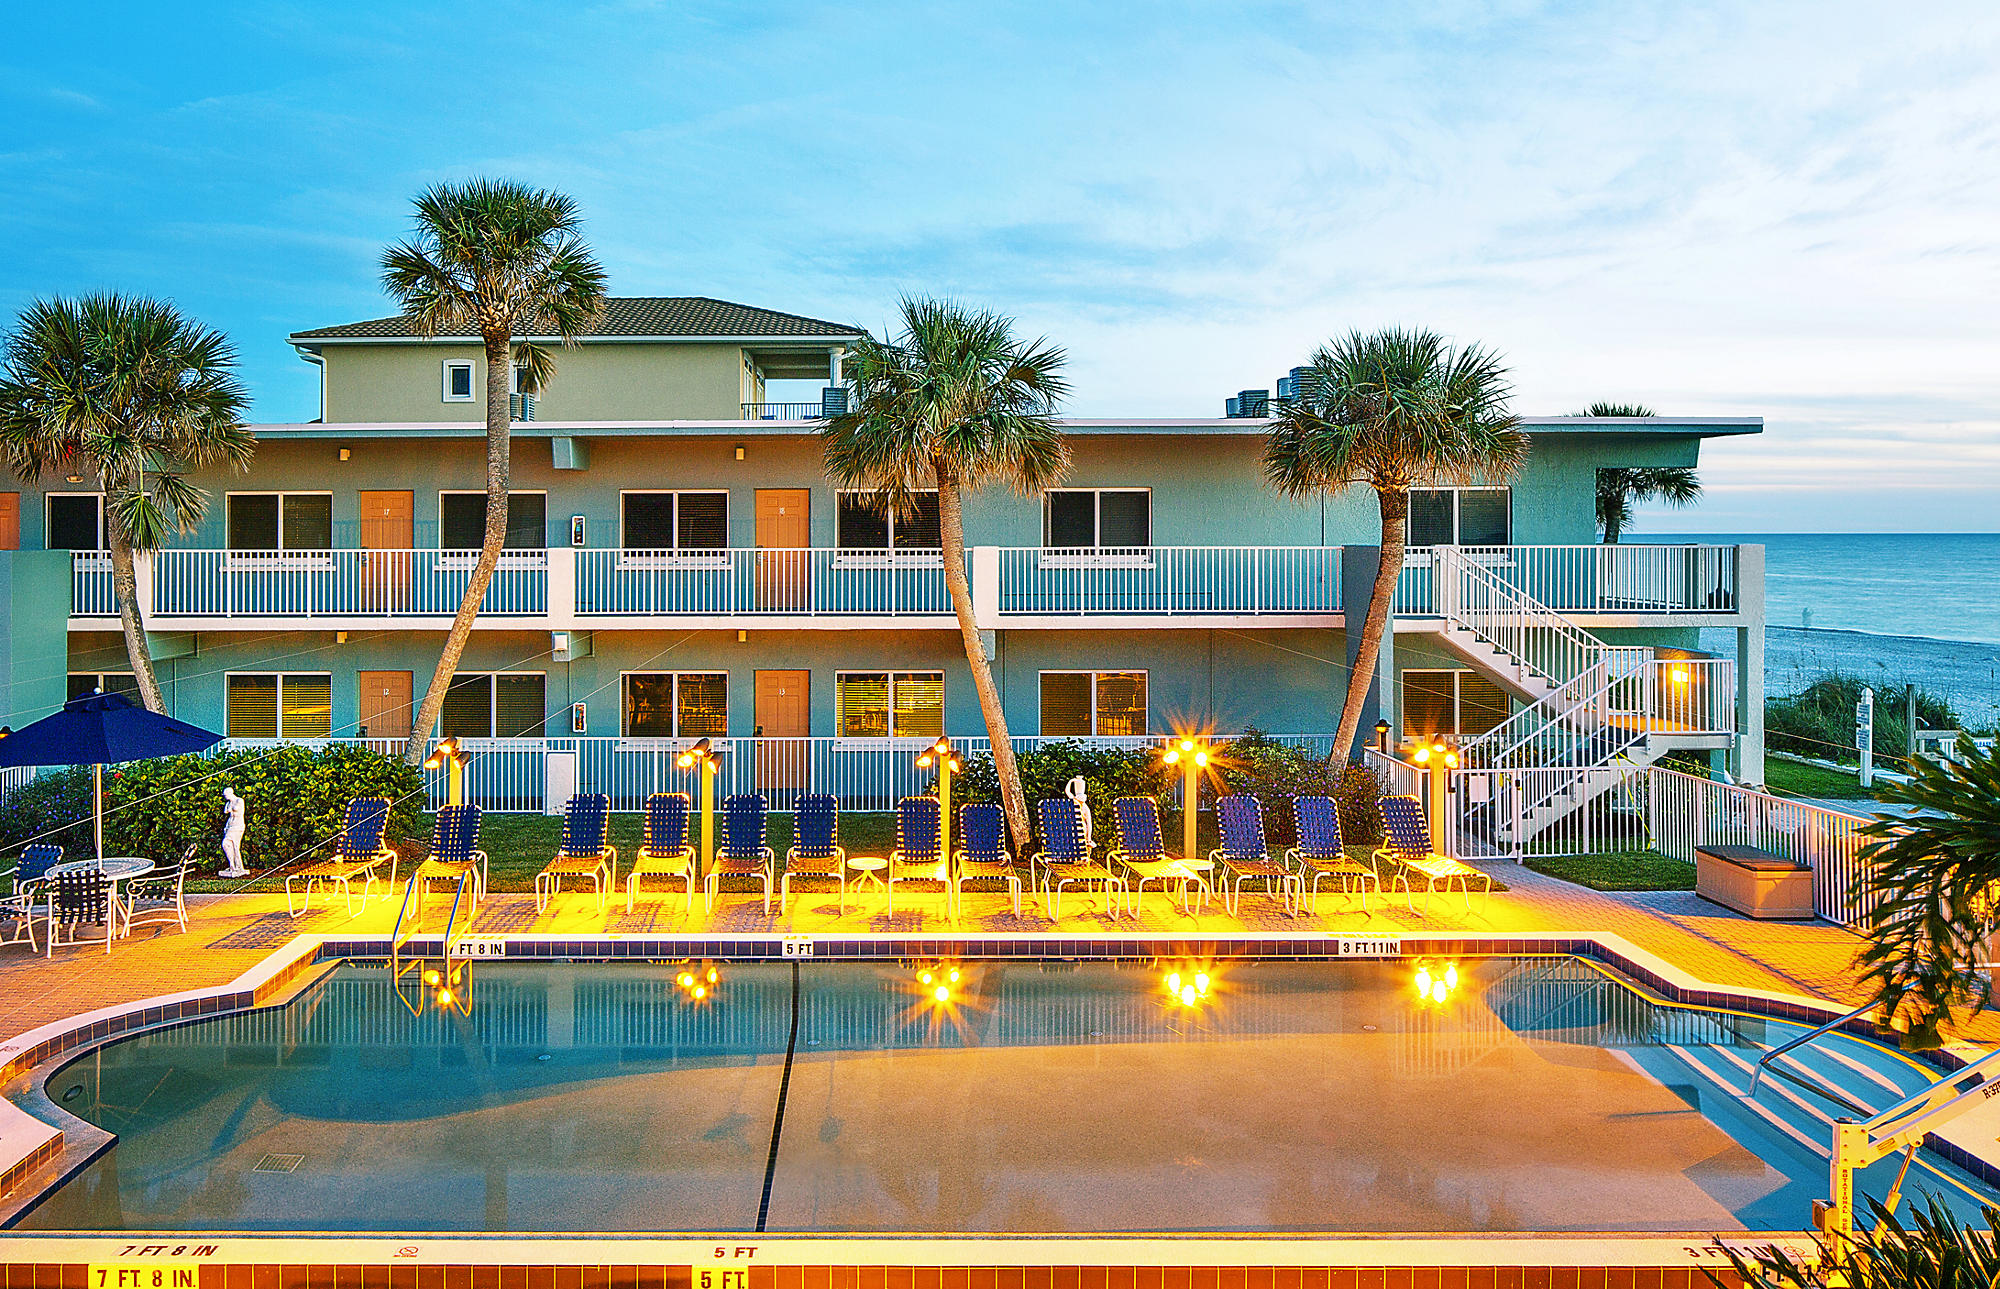 Via Roma Beach Resort - Bradenton Beach, FL | Bluegreen